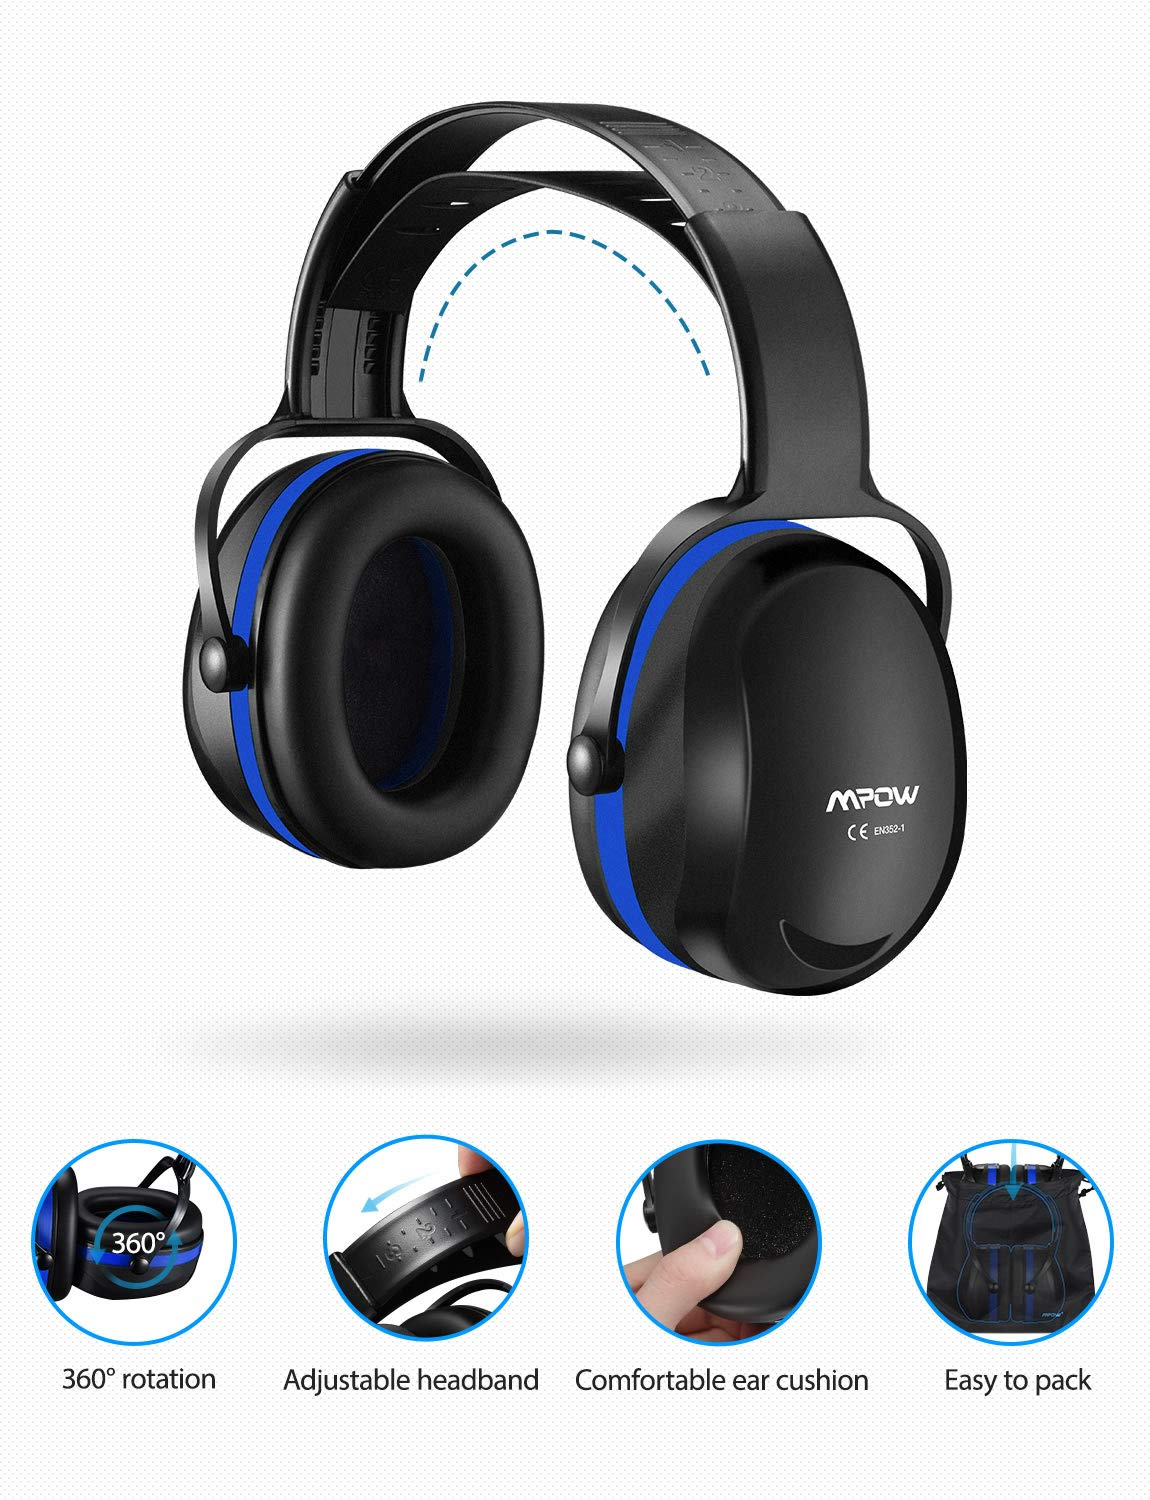 Mpow [Upgraded] Noise Reduction Safety Ear Muffs, Adjustable SNR 36dB Shooting Hunting Muffs, Hearing Protection with a Carrying Bag, Ear Defenders Fits Adults to Kids with Twist Resistant Handband by Mpow (Image #8)